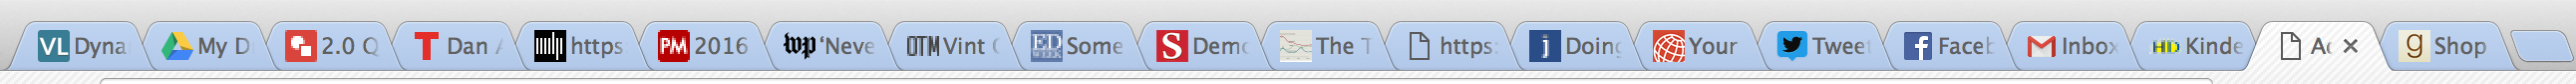 An Image of 20 open tabs on my web browser